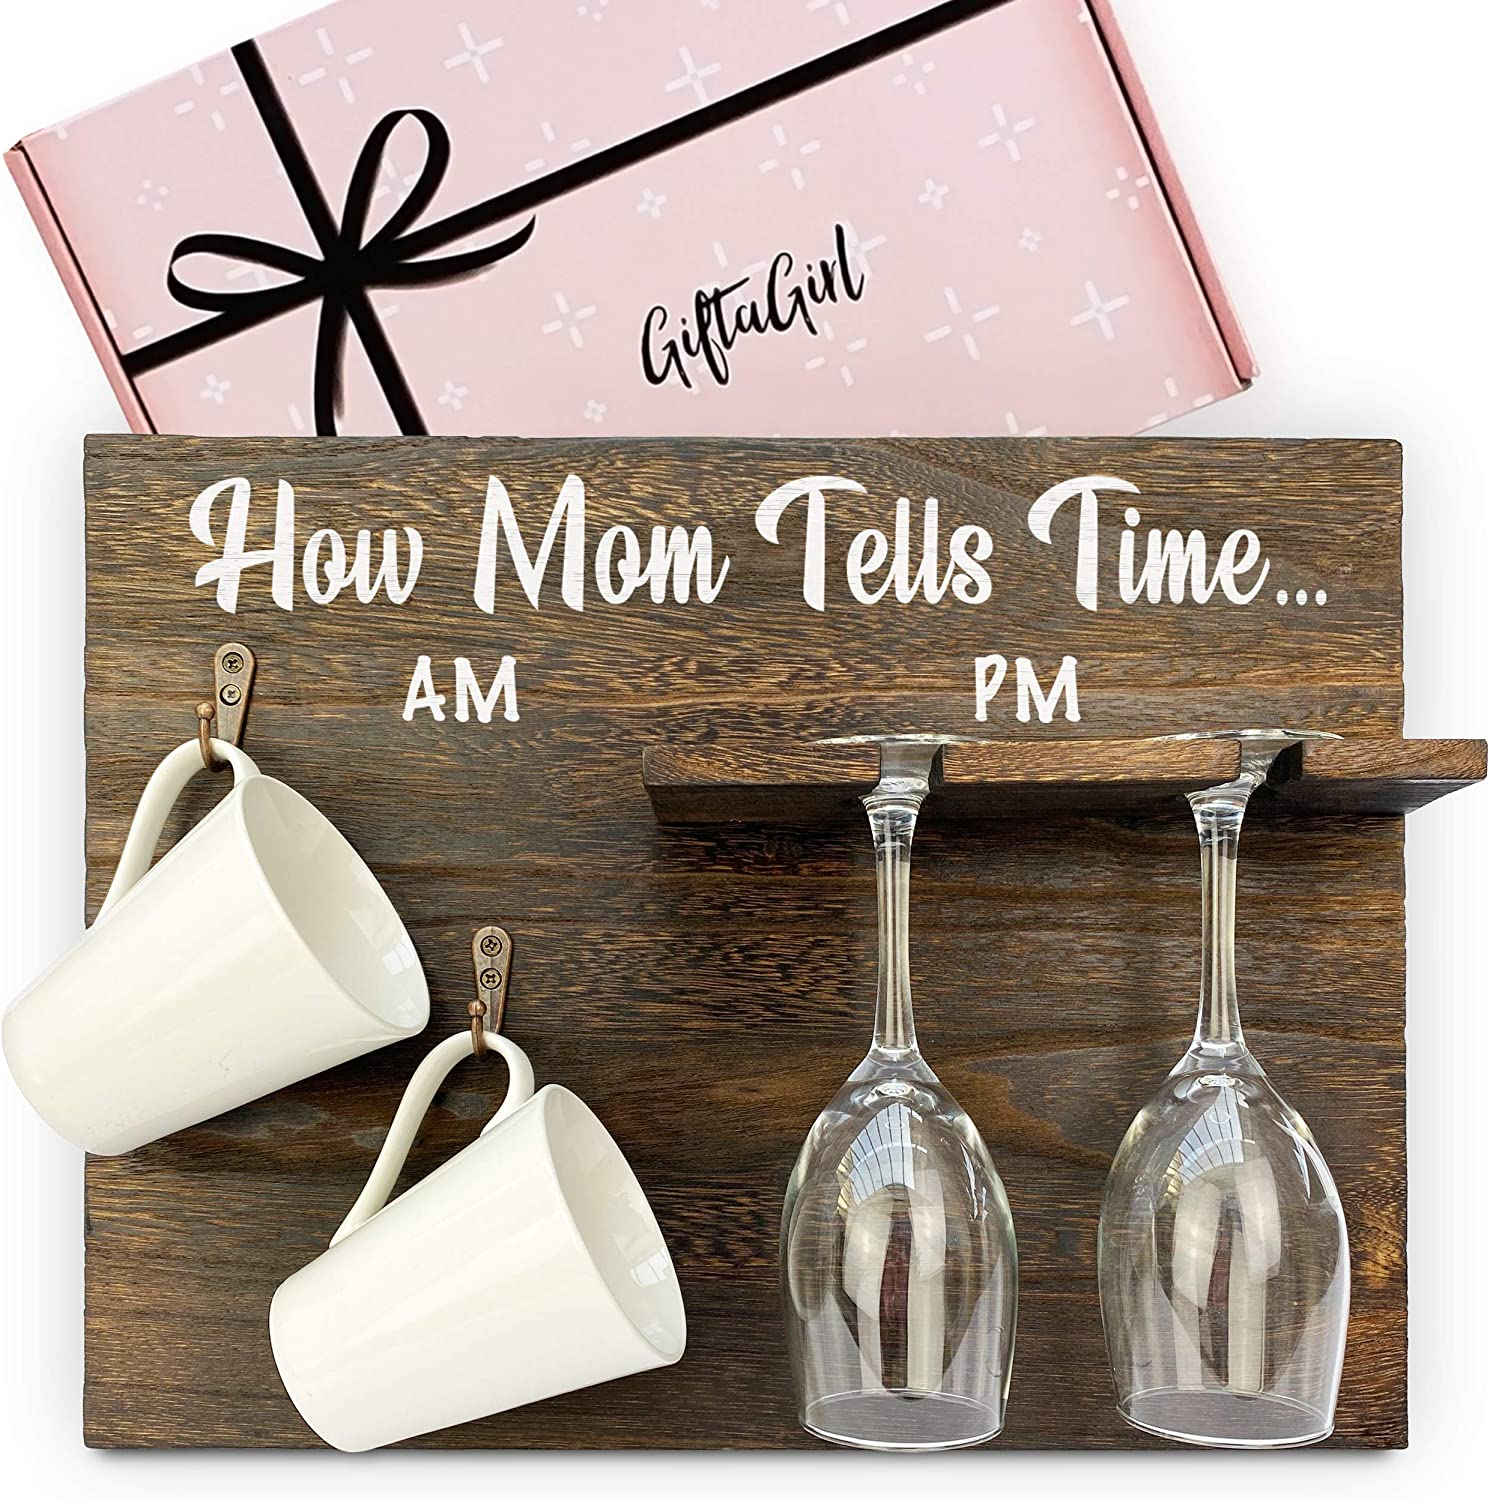 Very Popular Gifts for Mom or Birthday Gifts for Mom - Mom Gifts like this are a Little Cheeky, but are Fun Mom Birthday Gifts or Unique Gifts for Mom Who Has Everything. Mugs,Glasses Not Inc